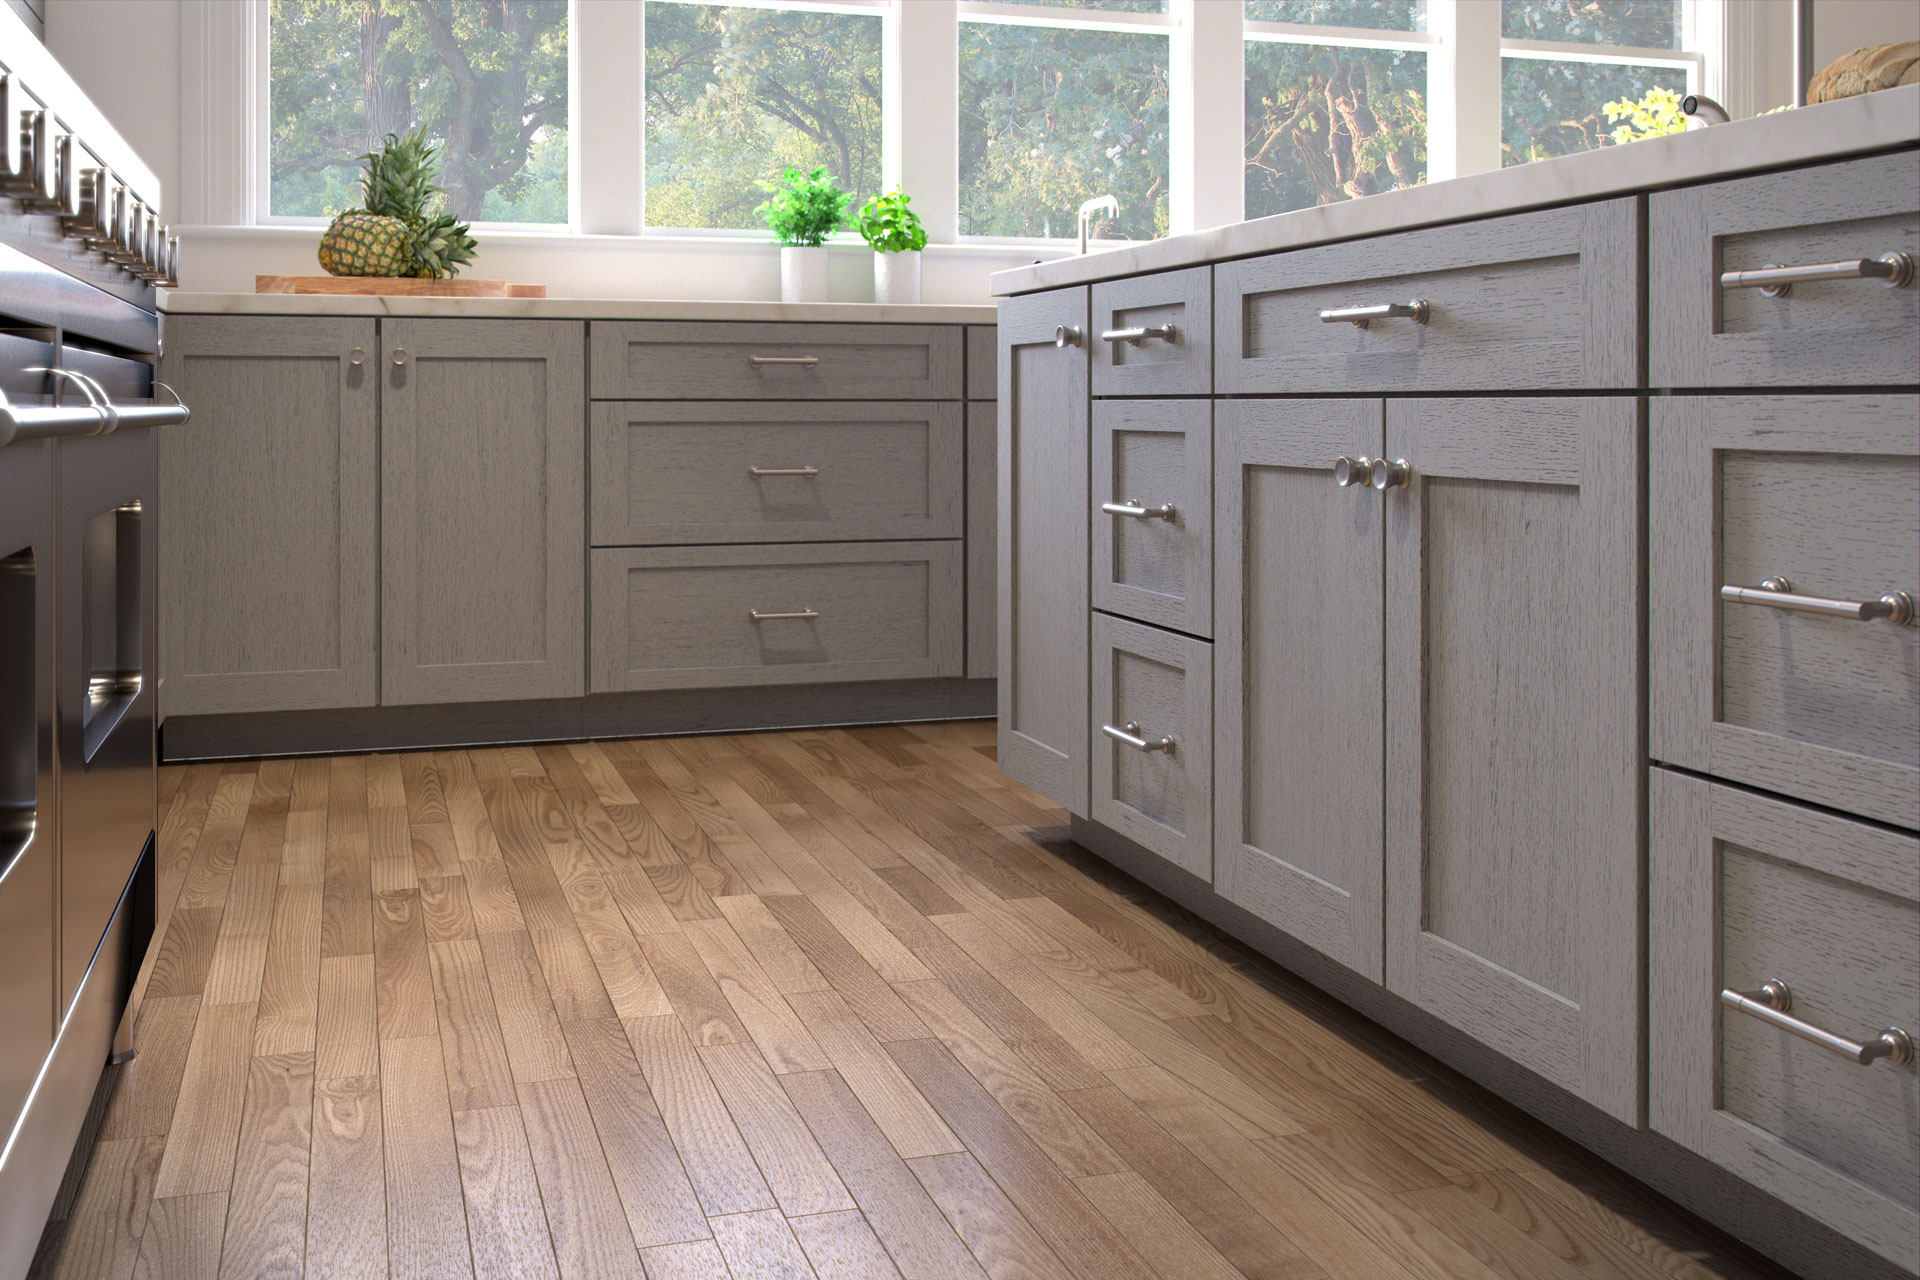 Nova Light Grey Forevermark Cabinetry - Light gray shaker cabinets